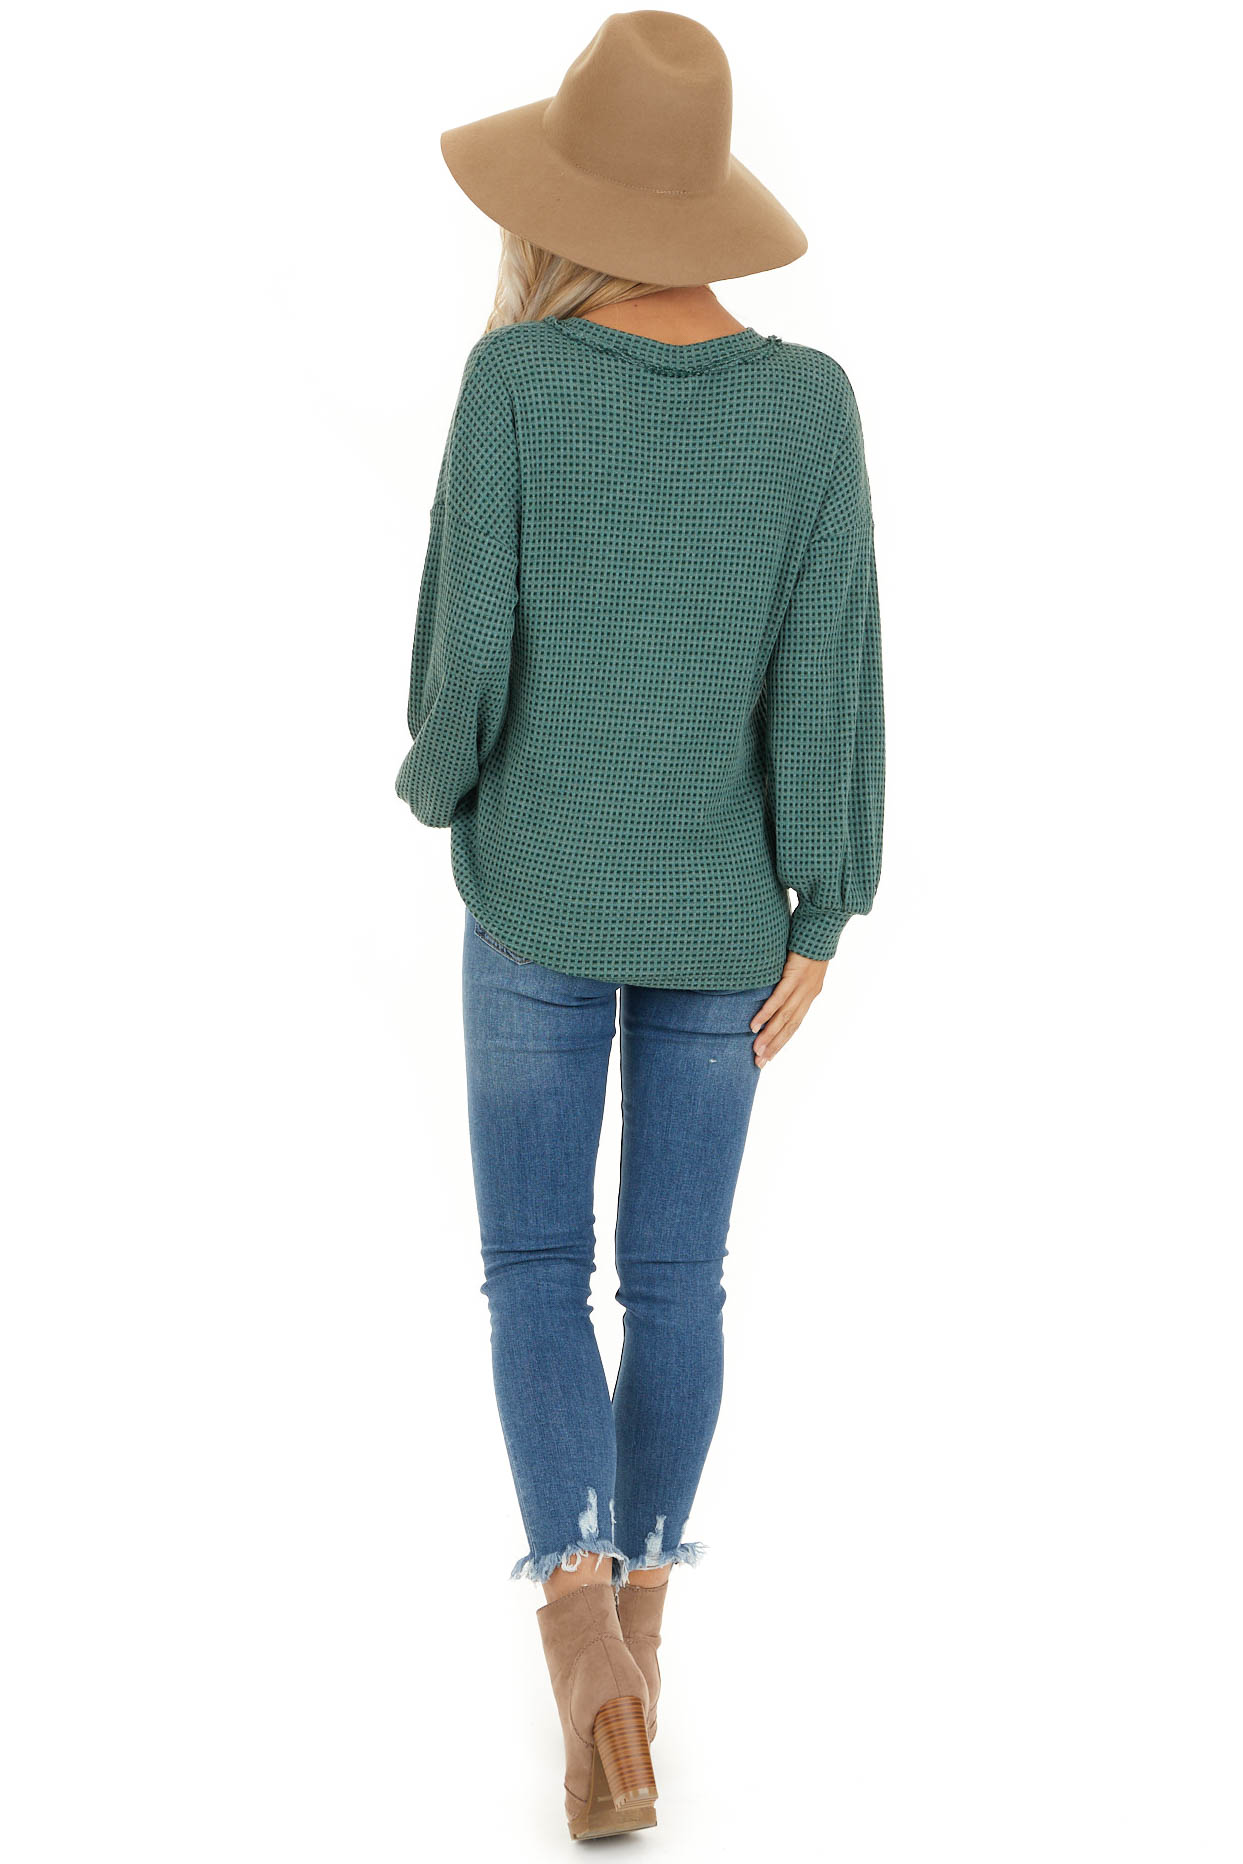 Teal Waffle Knit Top with Front Button Details back full body